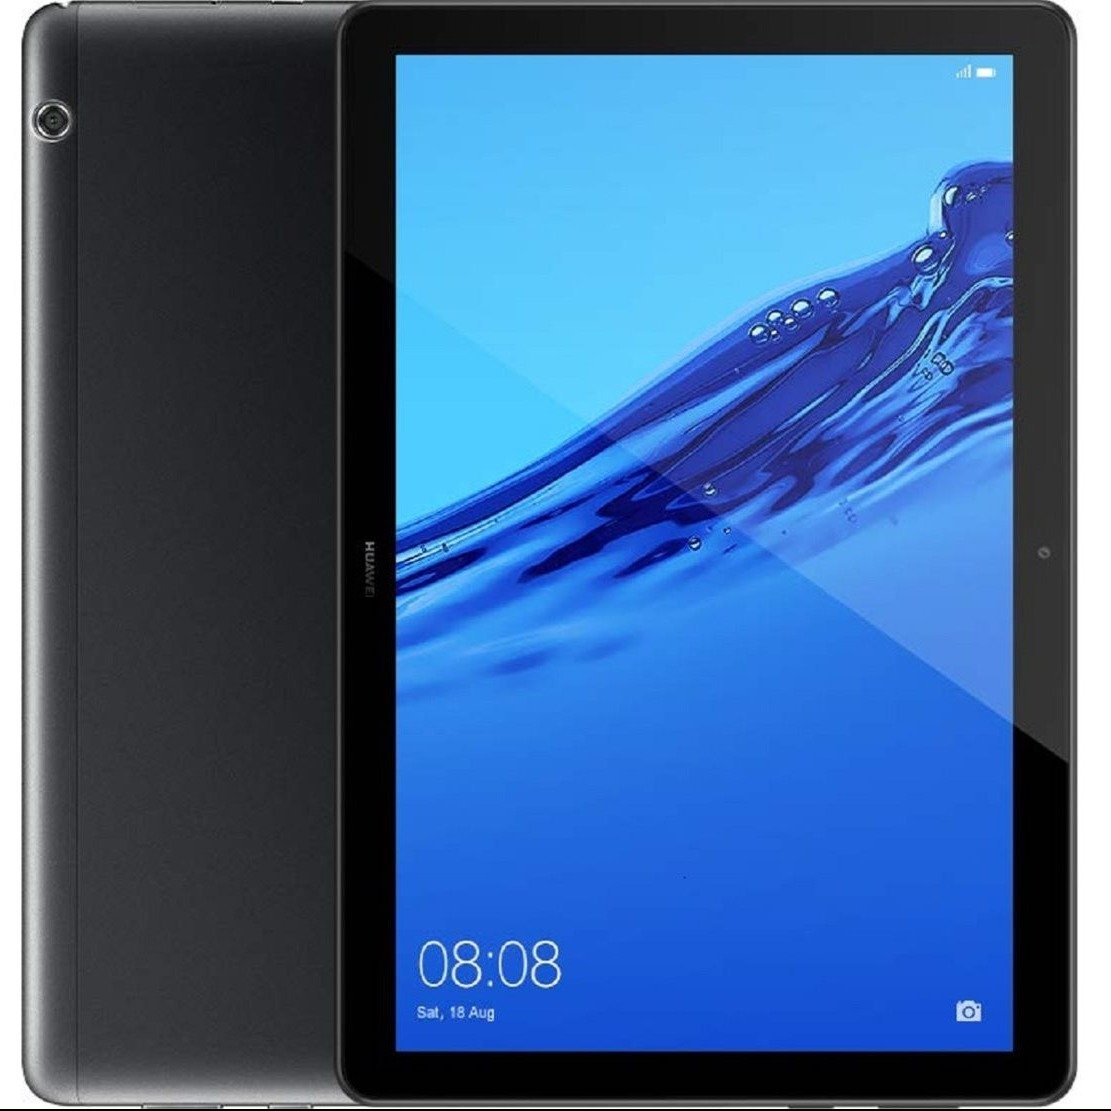 TABLET PC HUAWEI 10.1 FULL HD OCTA CORE 1.7GHz 2GB 16GB WIFI+BT MEDIAPAD T5 - AGS2-W09 - BLACK ,Display 10 Inch